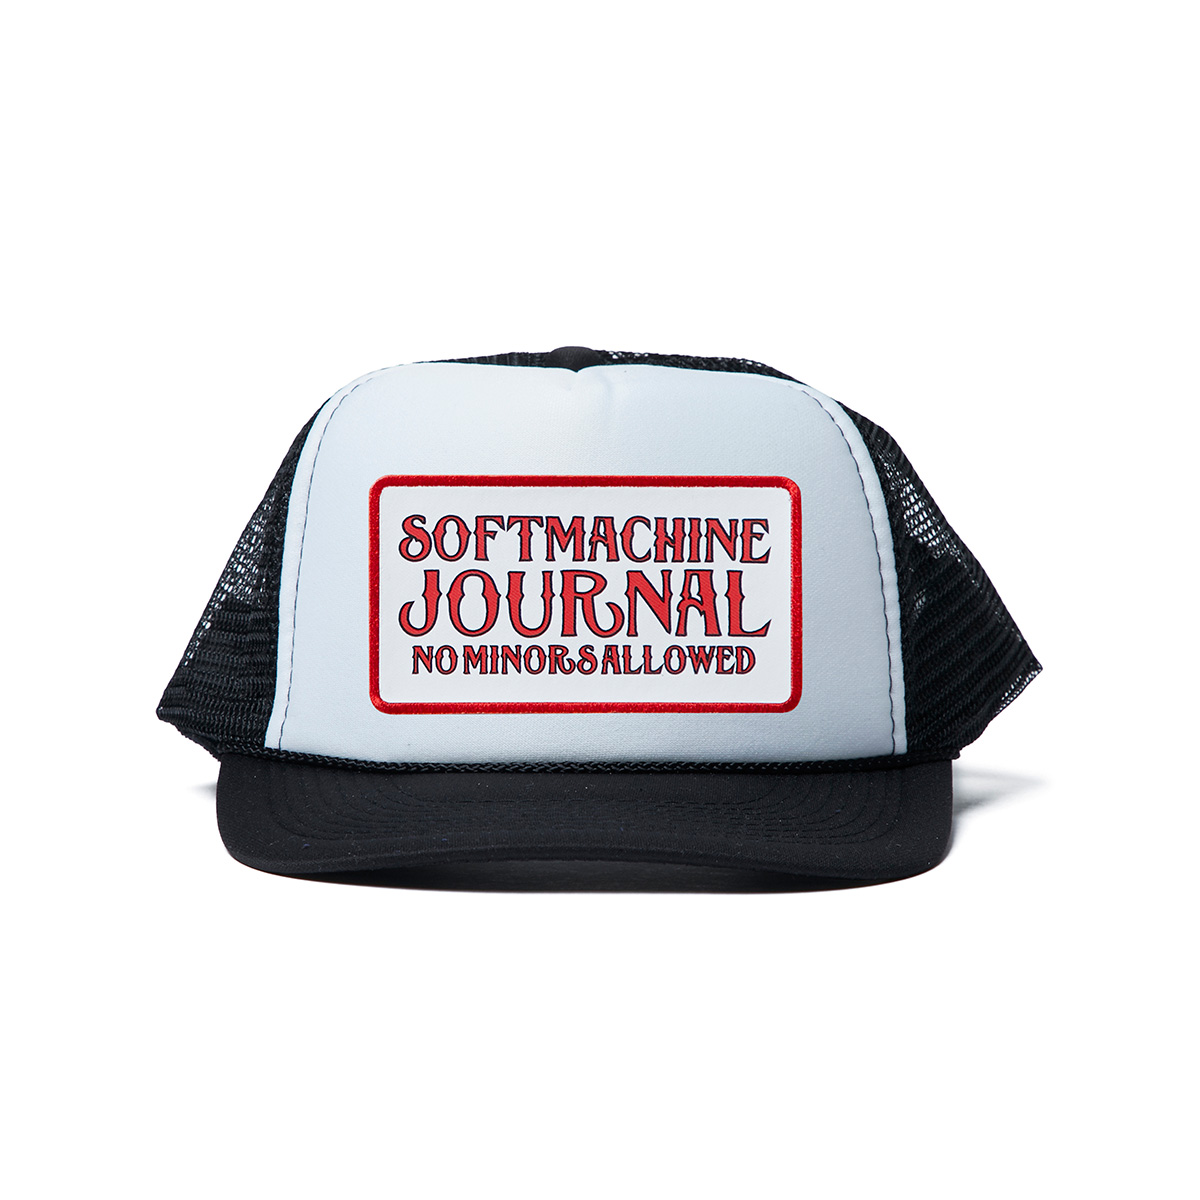 SM JOURNAL CAP